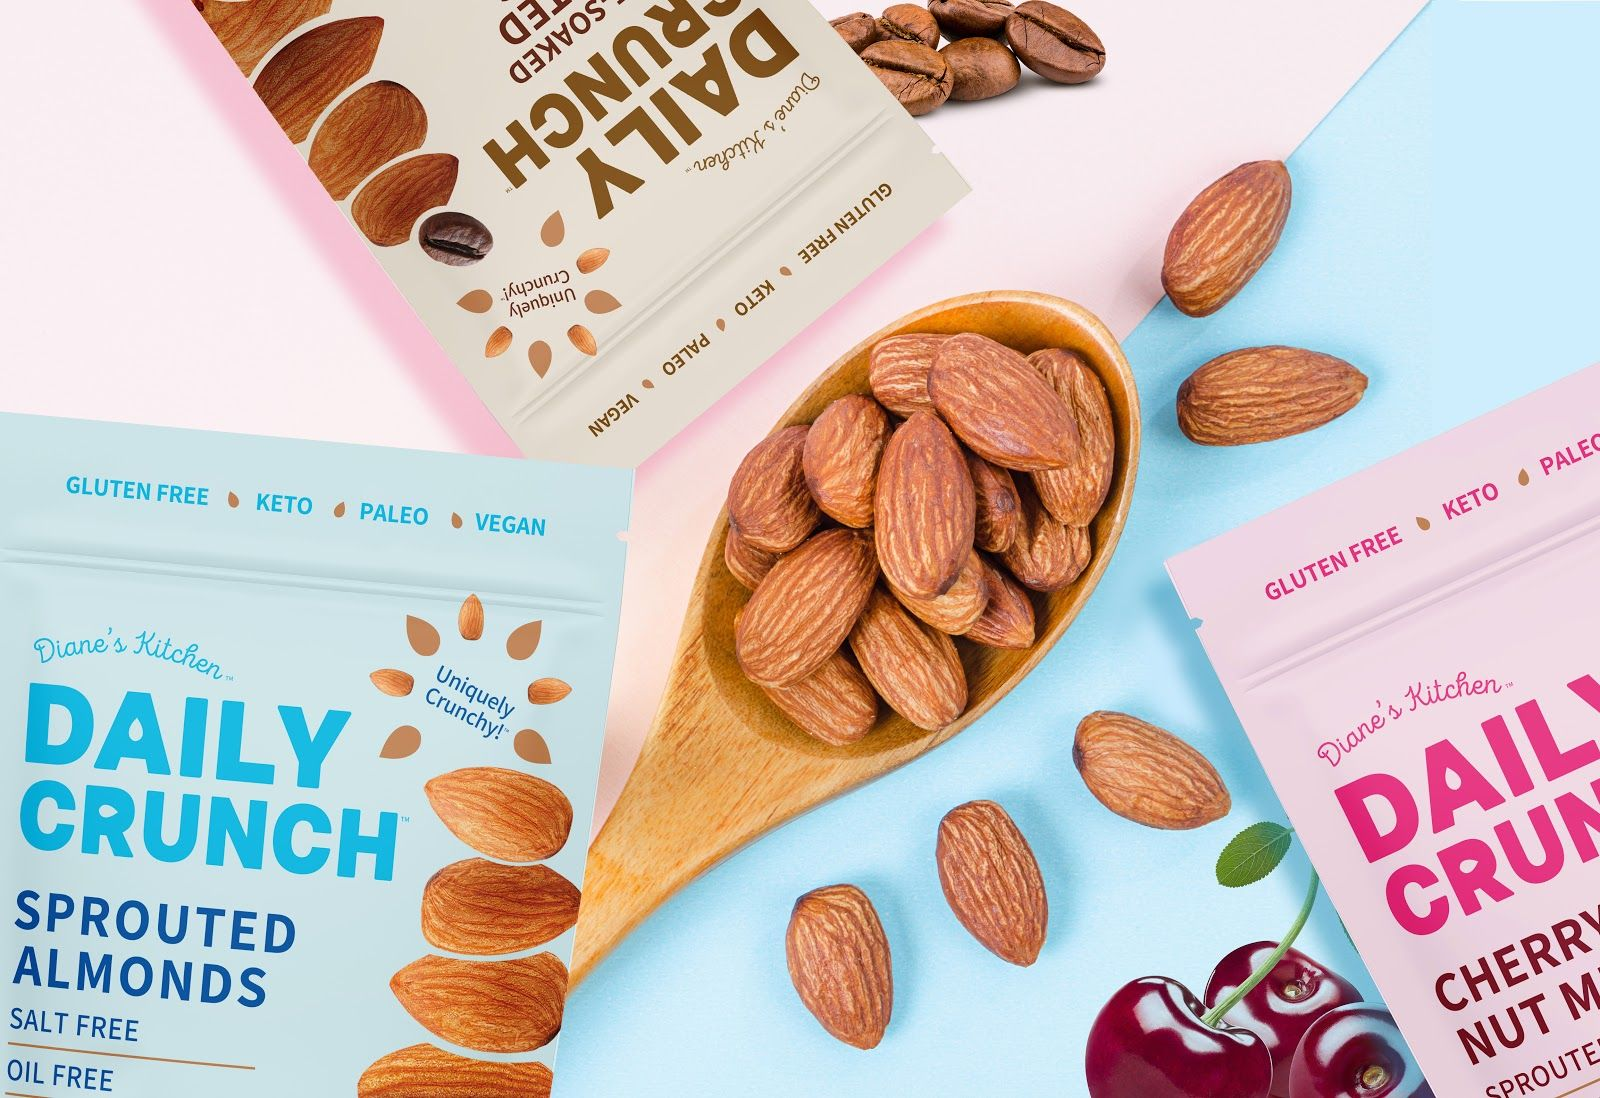 Daily Crunch Snack Almonds